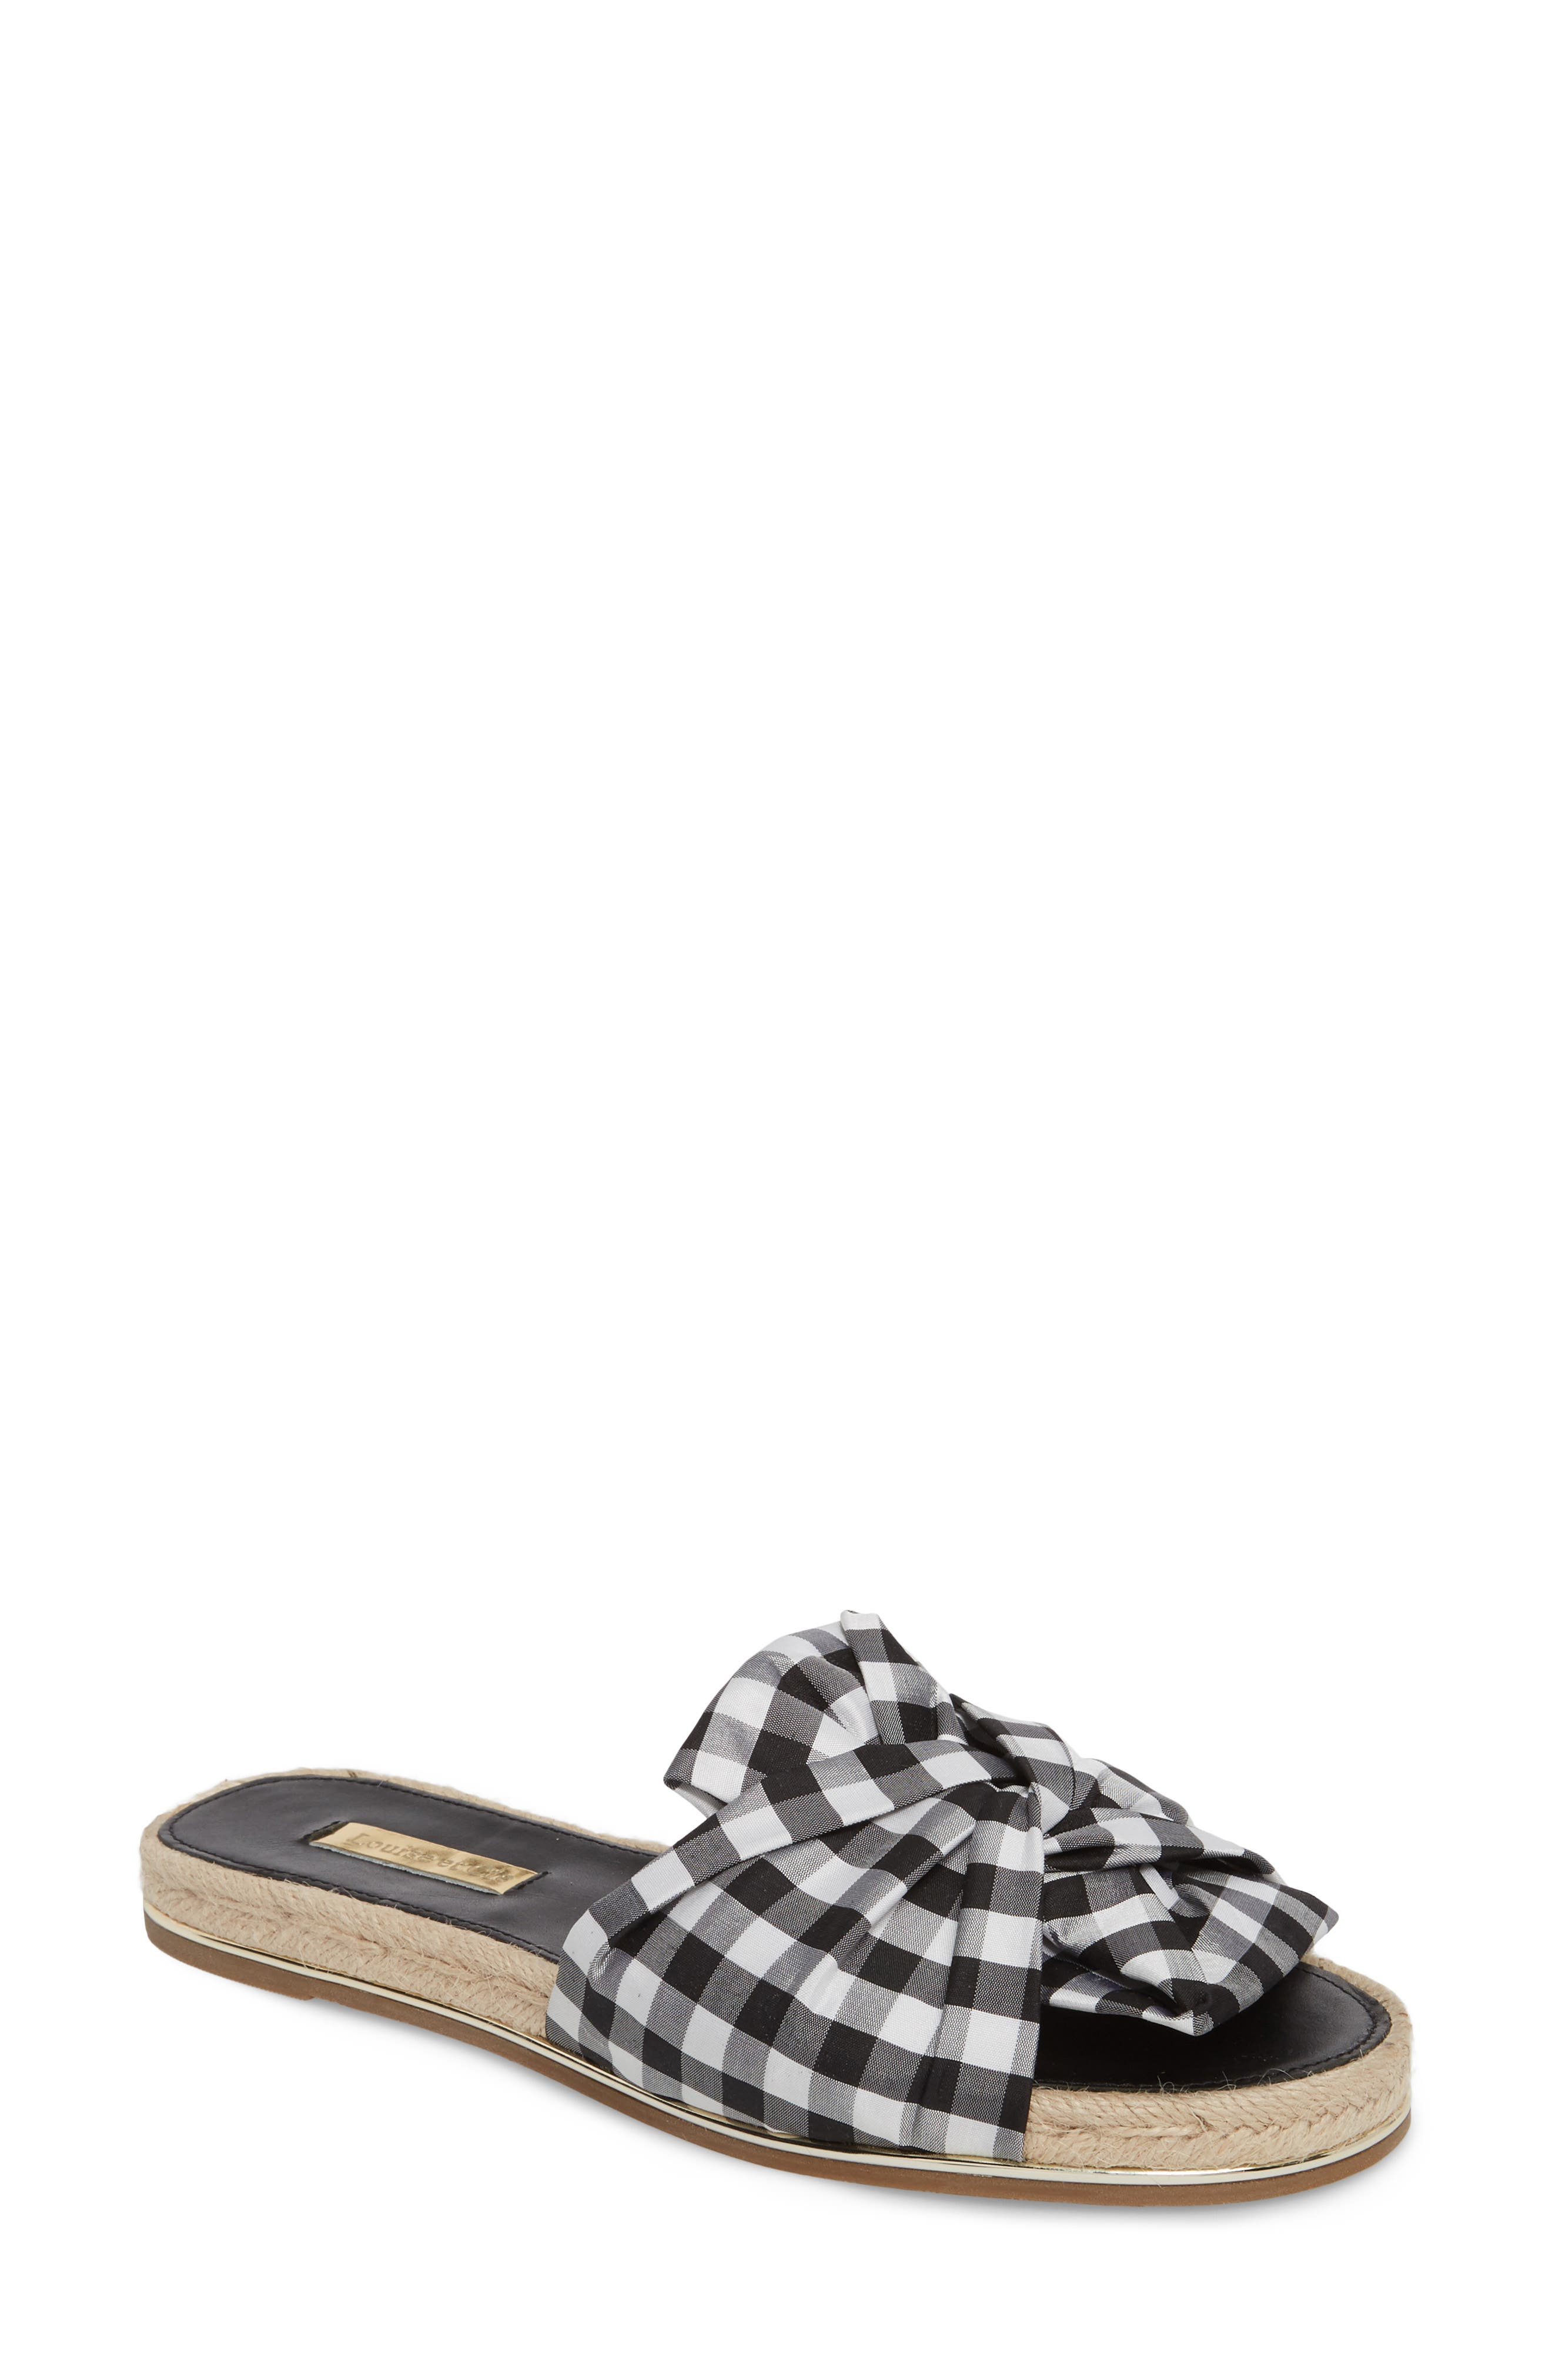 Camille Espadrille Slide Sandal, Main, color, Black/ White Gingham Fabric